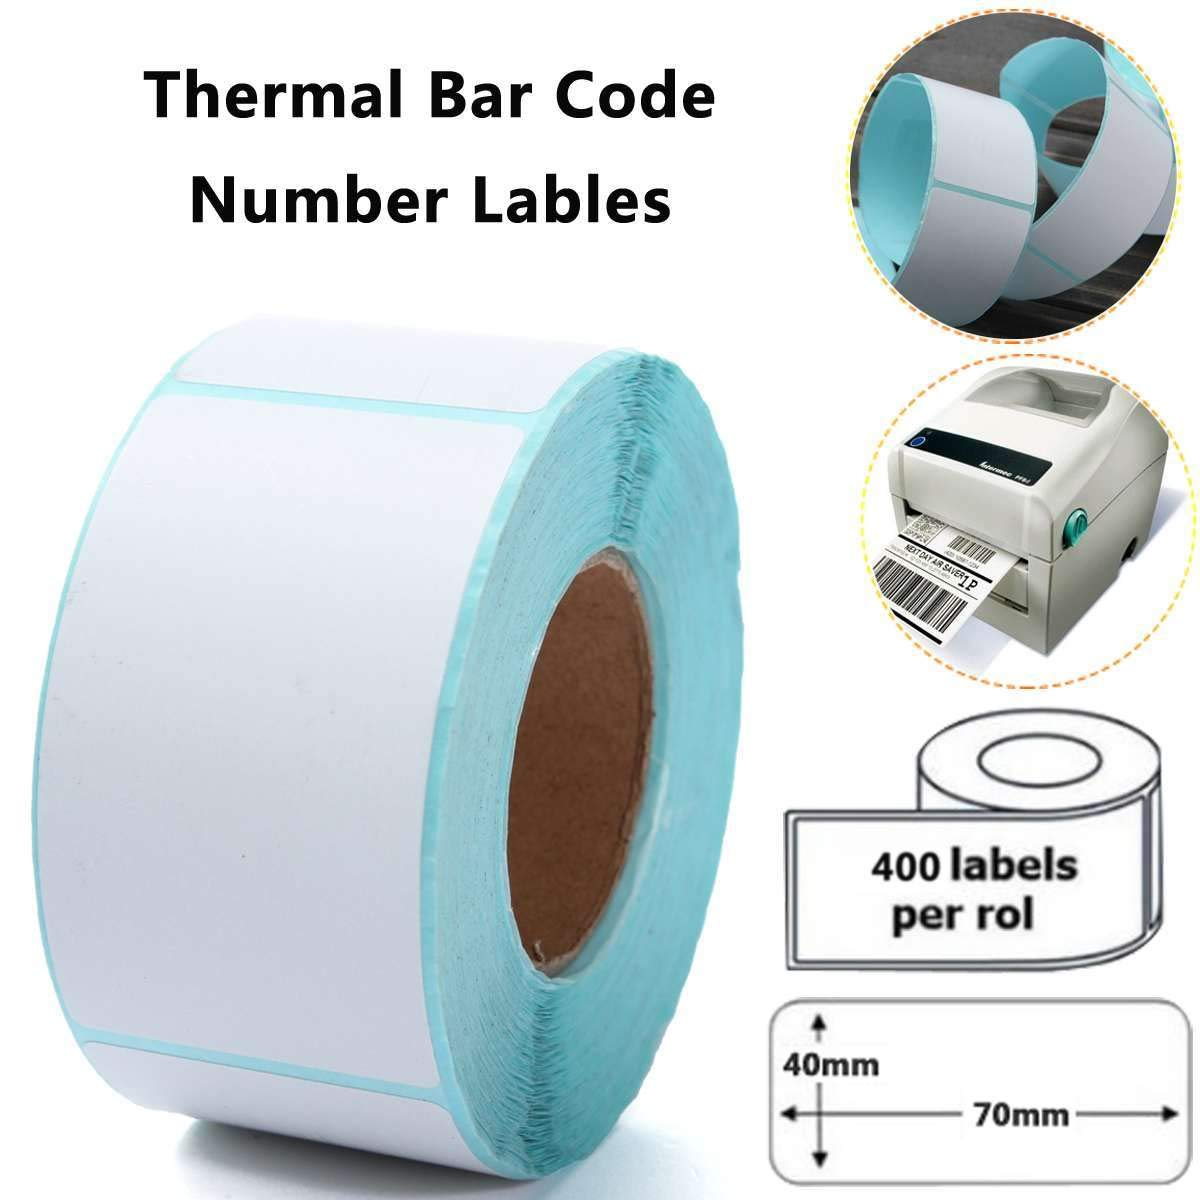 400PCS Printing Label 40x70mm Barcode Number Thermal Adhesive Paper Sticker for Printer Supplies by Beizuu (Image #6)